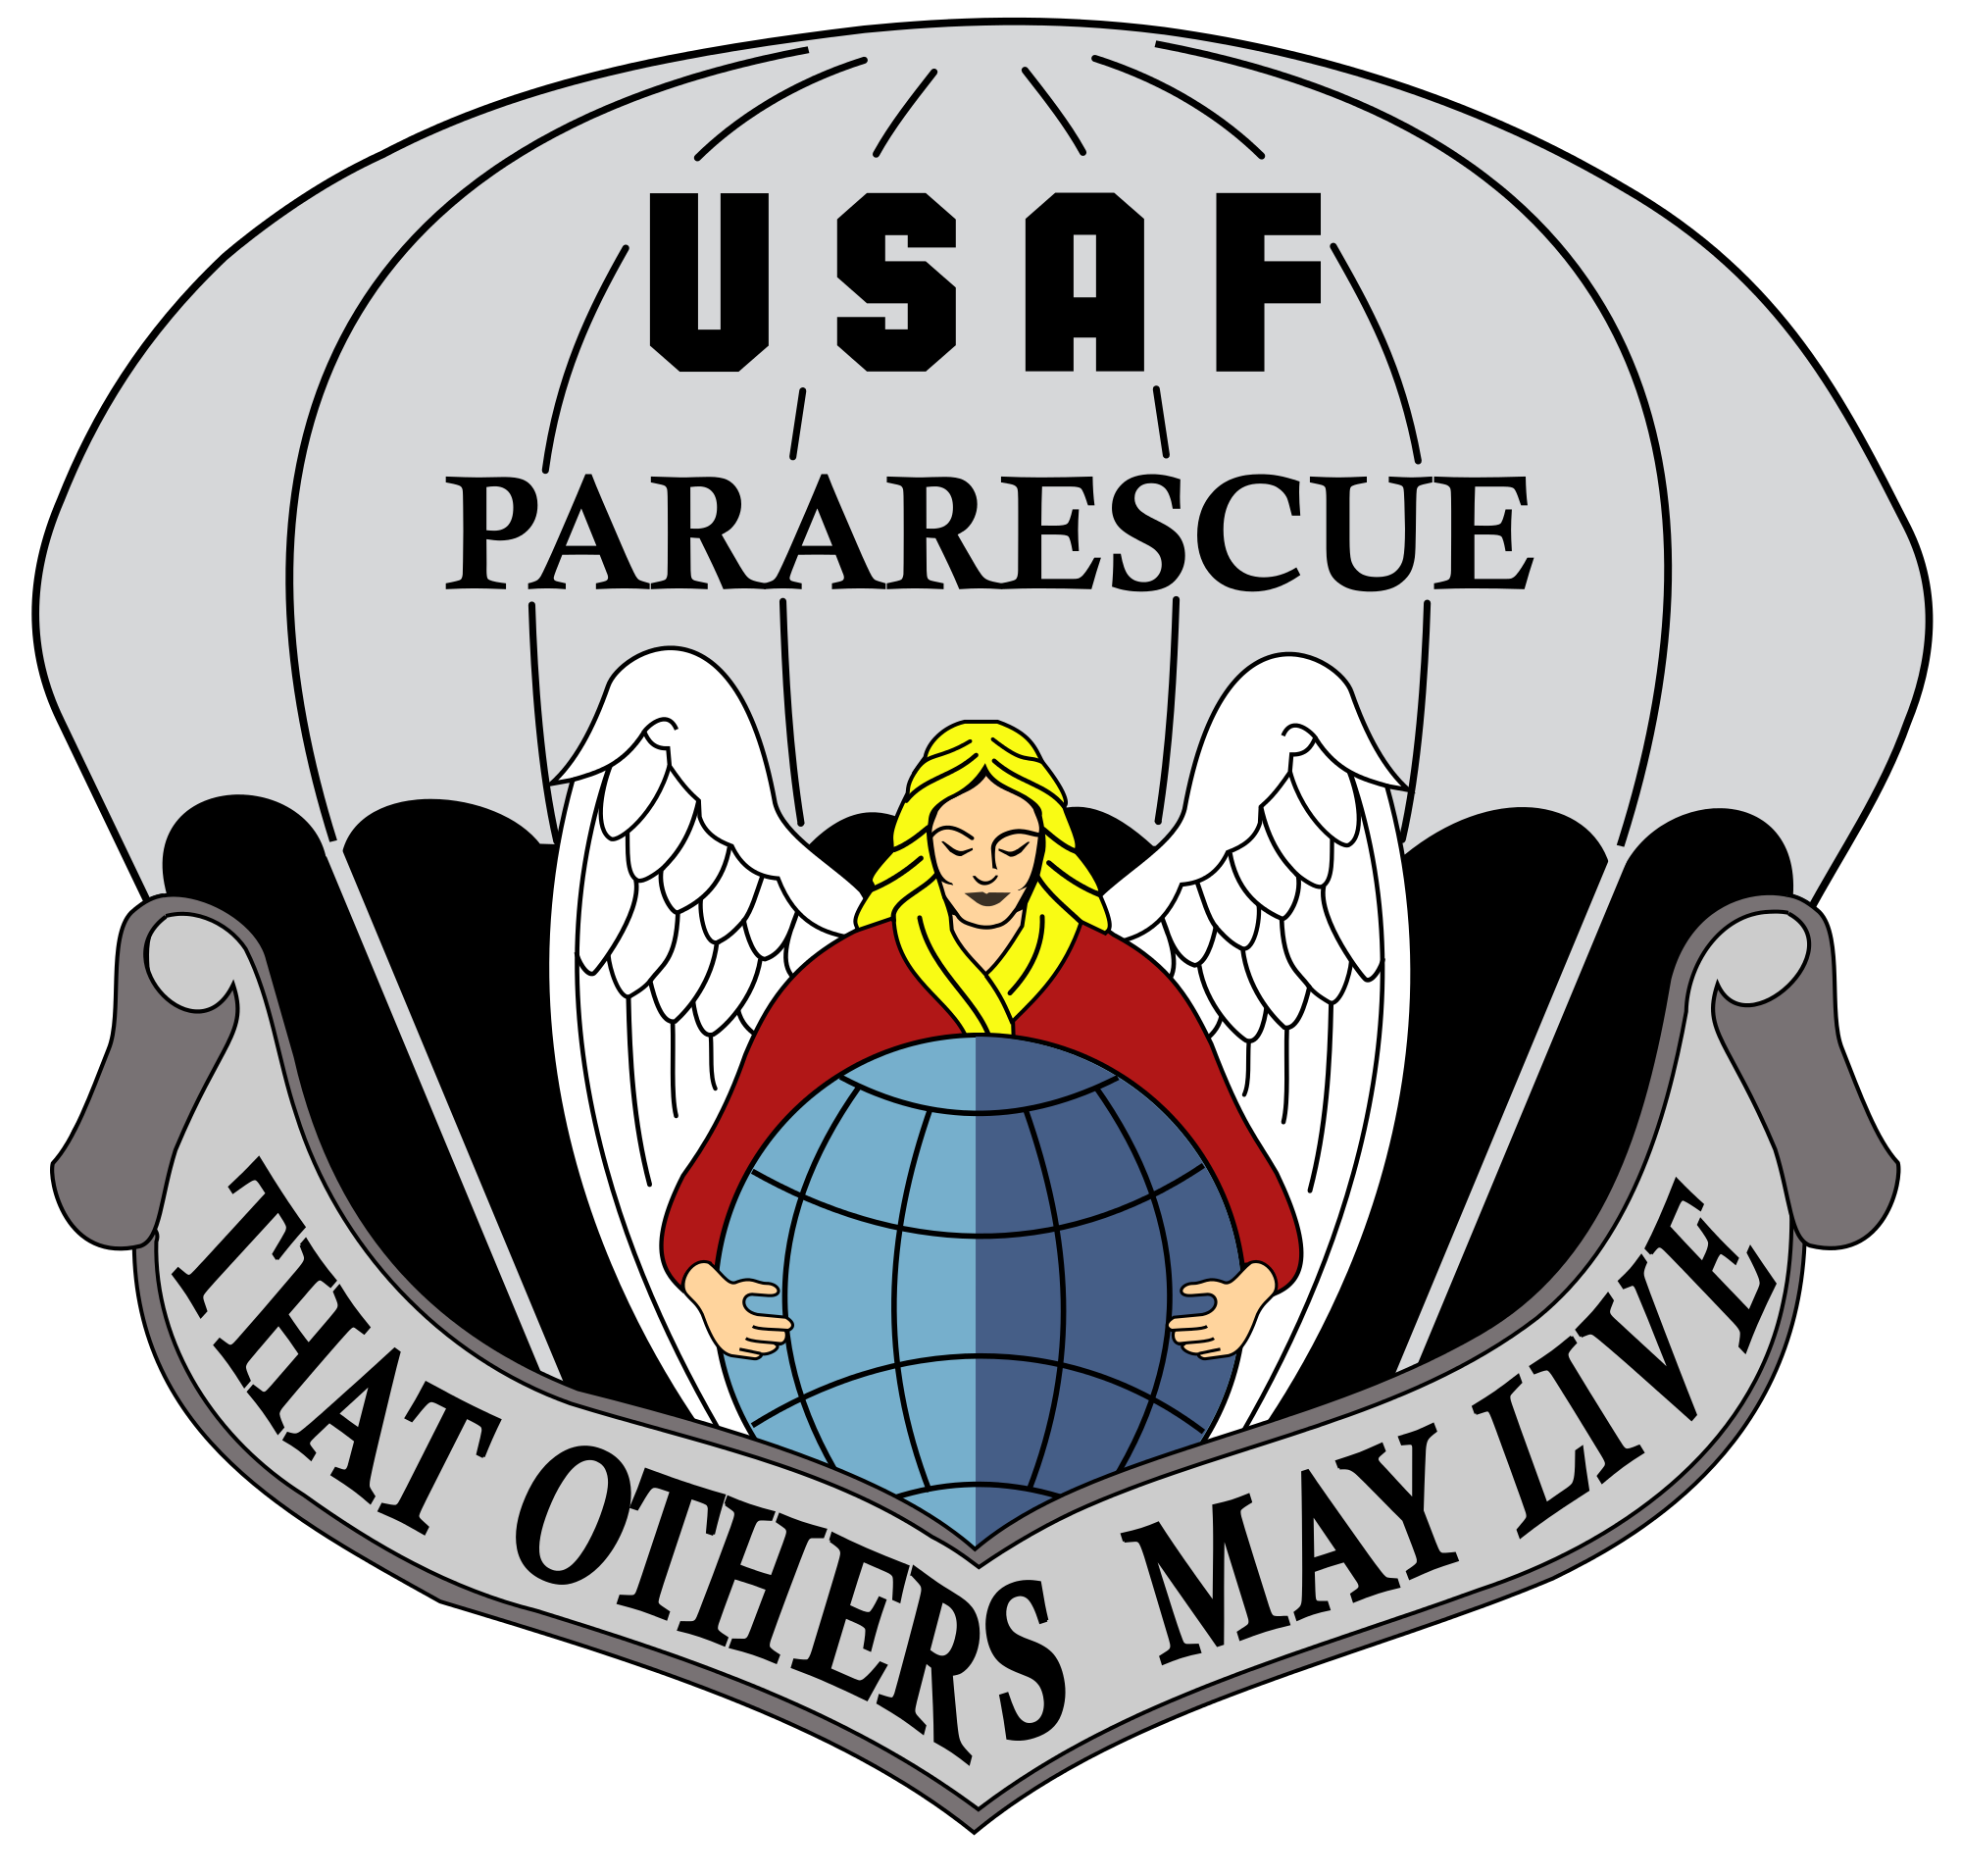 Air force captain png. United states pararescue wikipedia